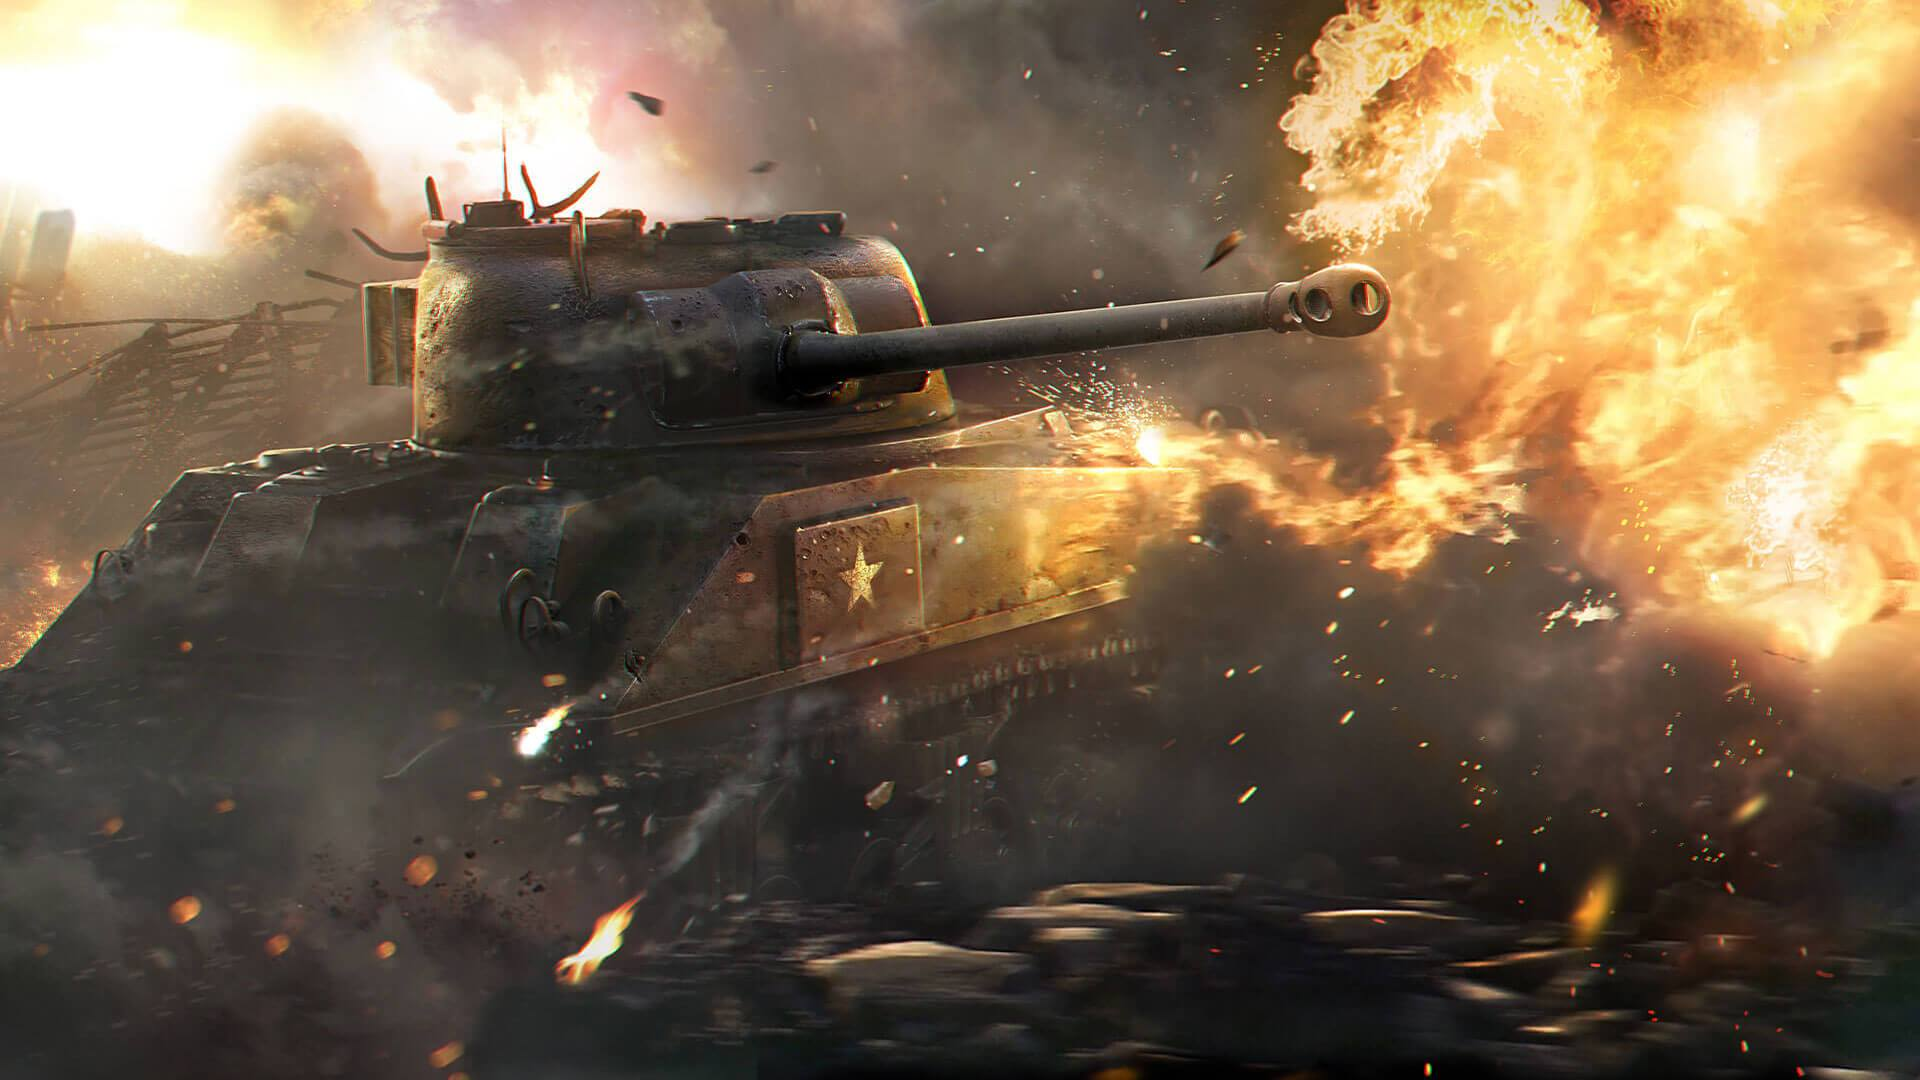 world of tanks war stories download